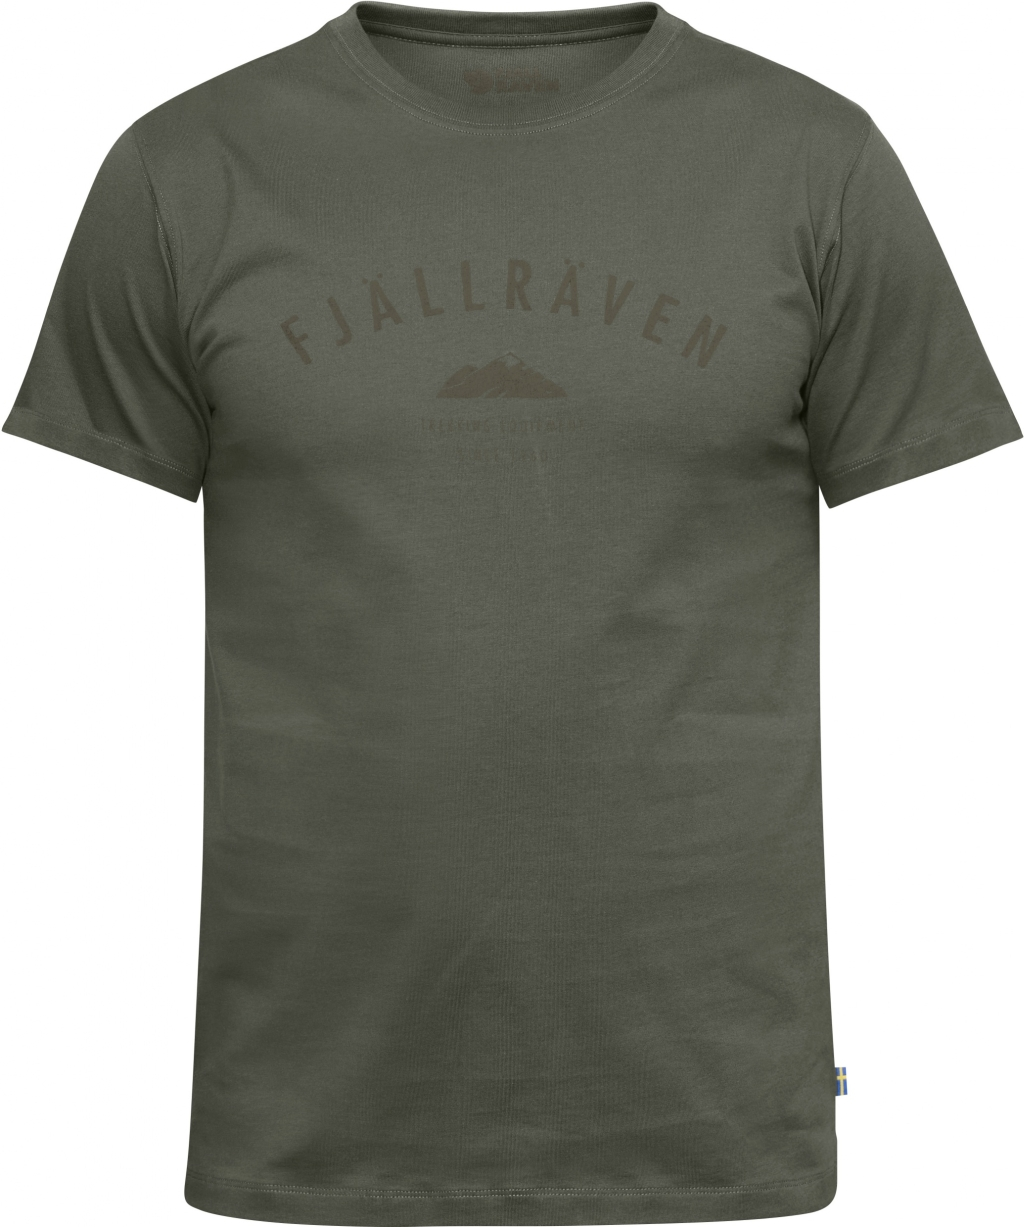 FjallRaven Trekking Equipment T-shirt Mountain Grey-30